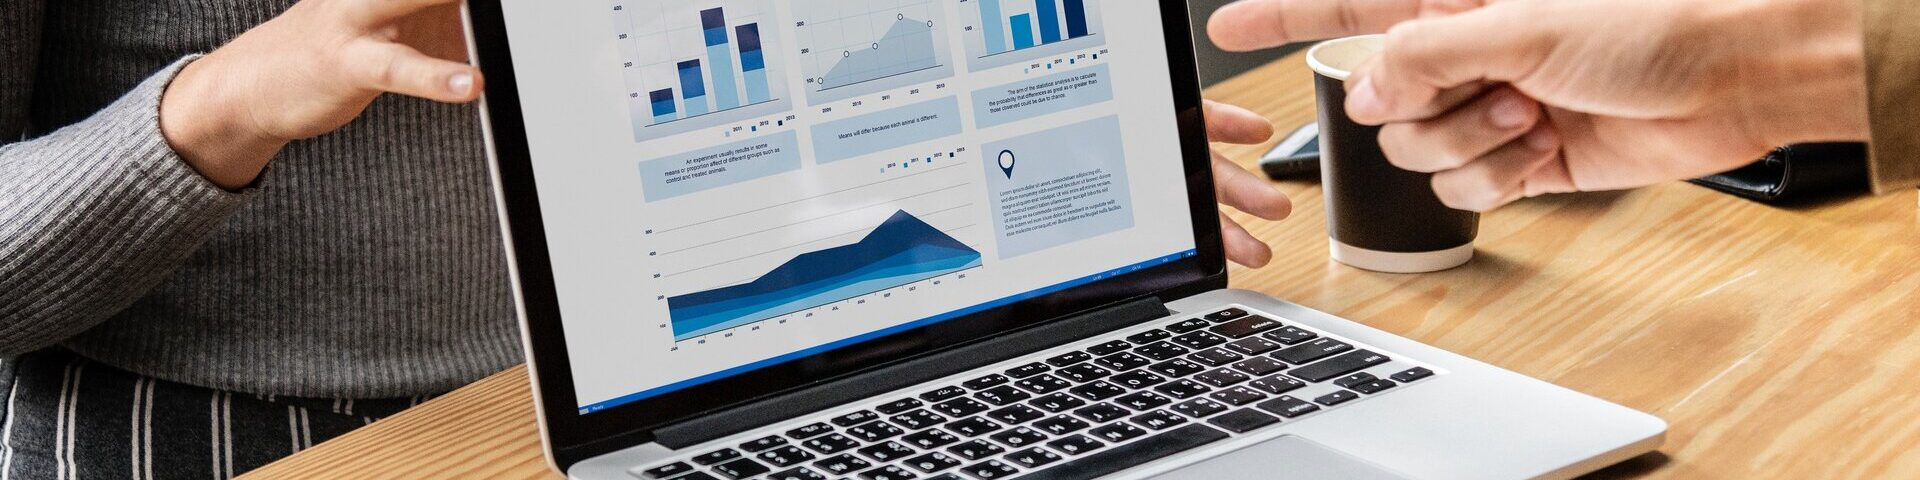 Best Marketing Tools for Online Business